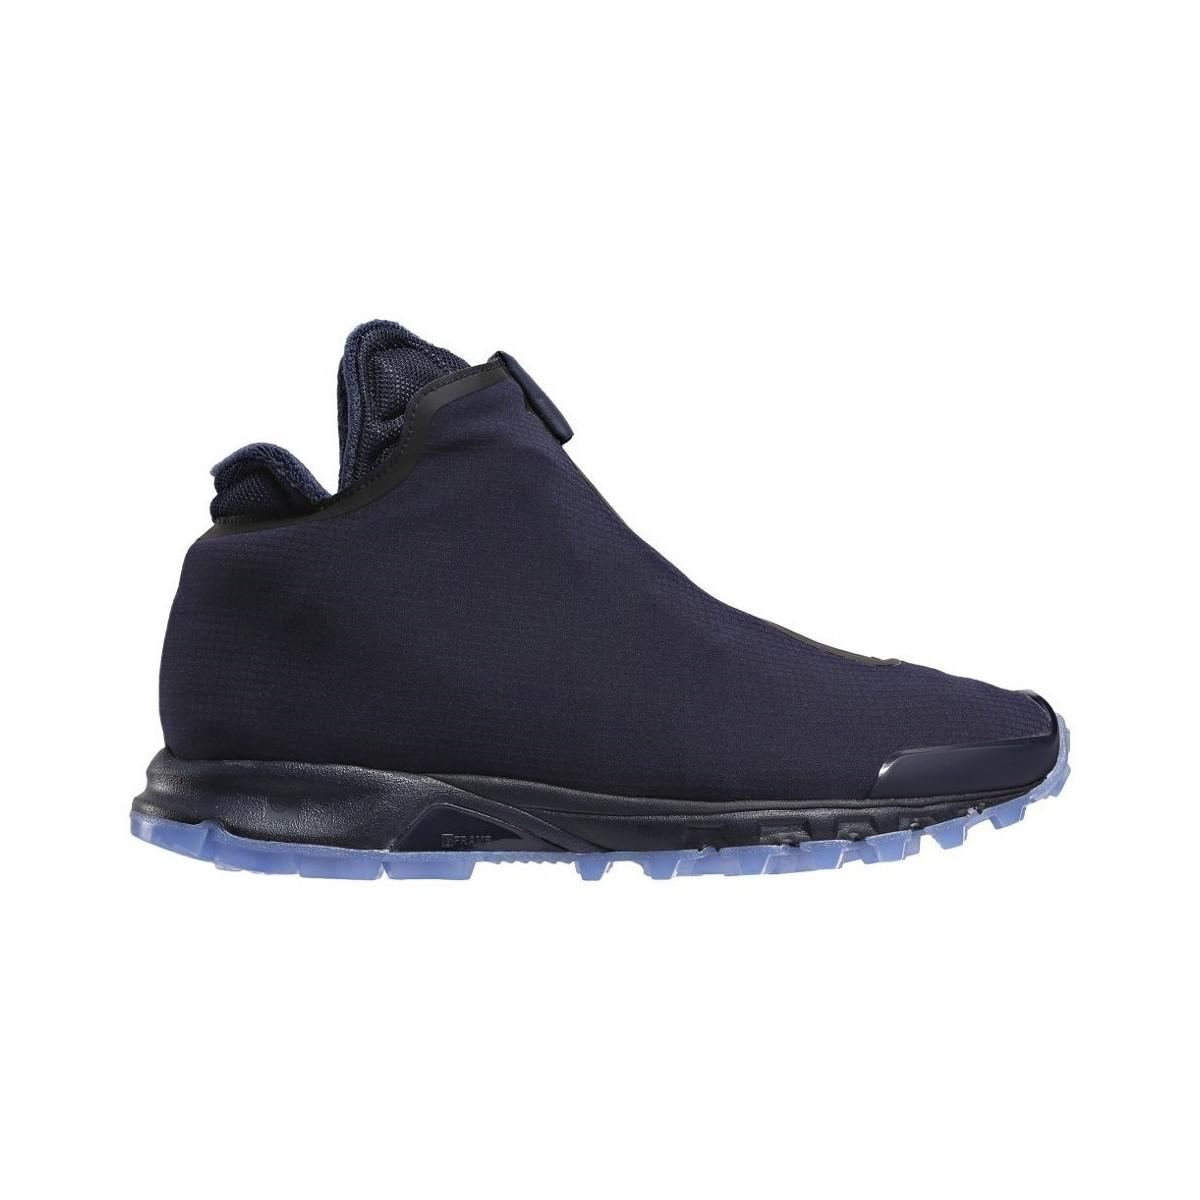 8c815eeaa Reebok X Cottweiler Trail Boot Men s Shoes (high-top Trainers) In ...